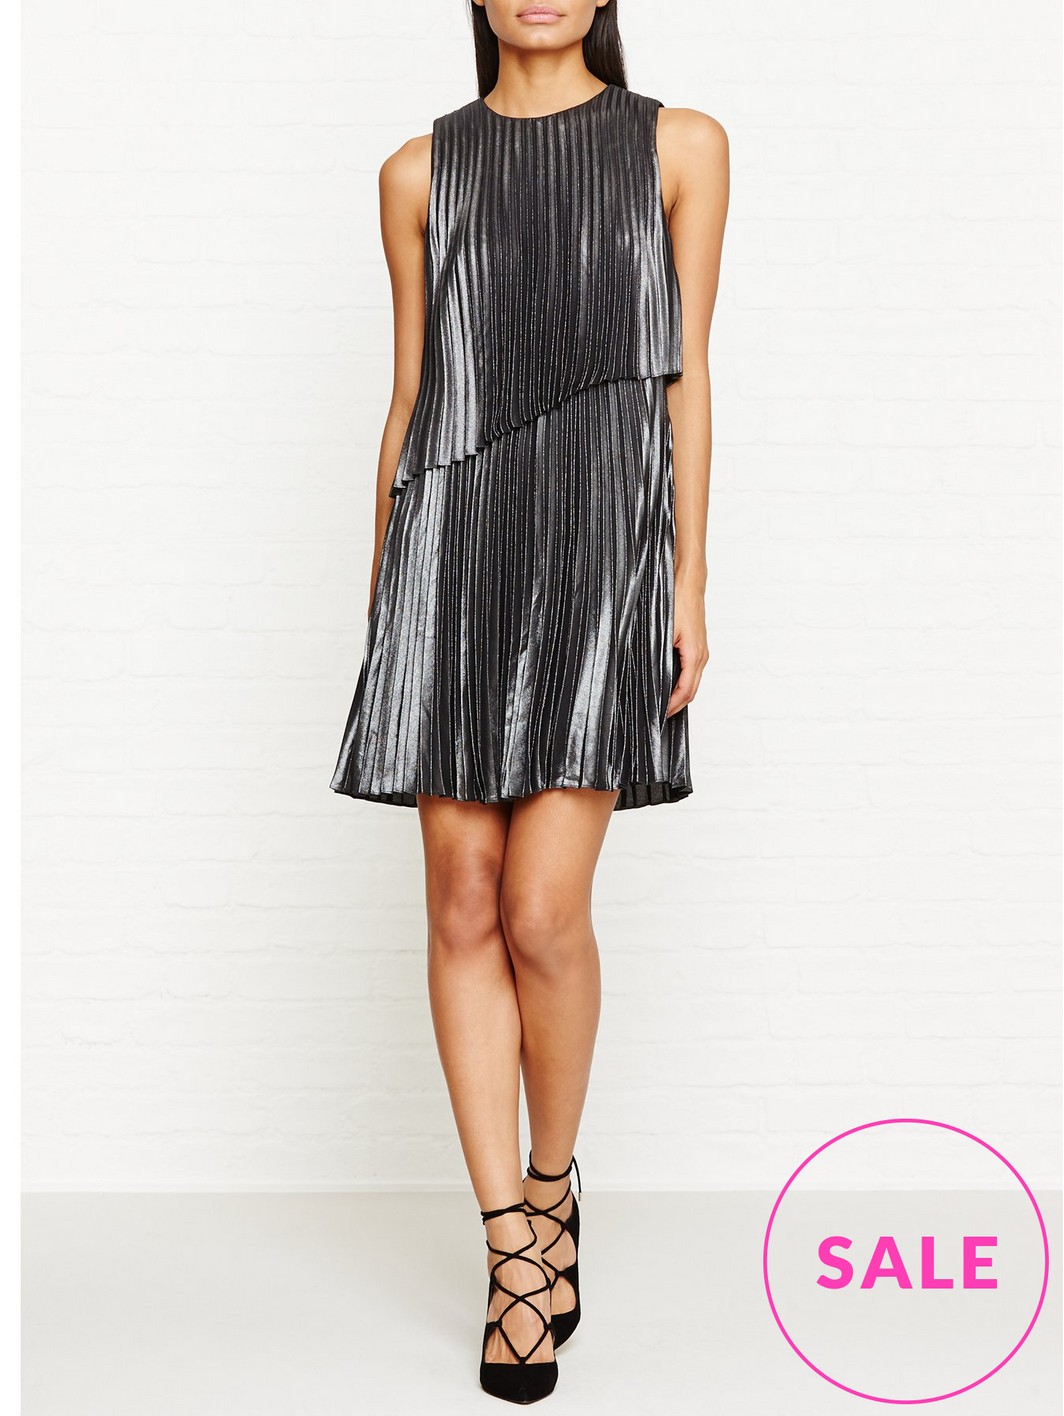 £112 at Very Exclusive